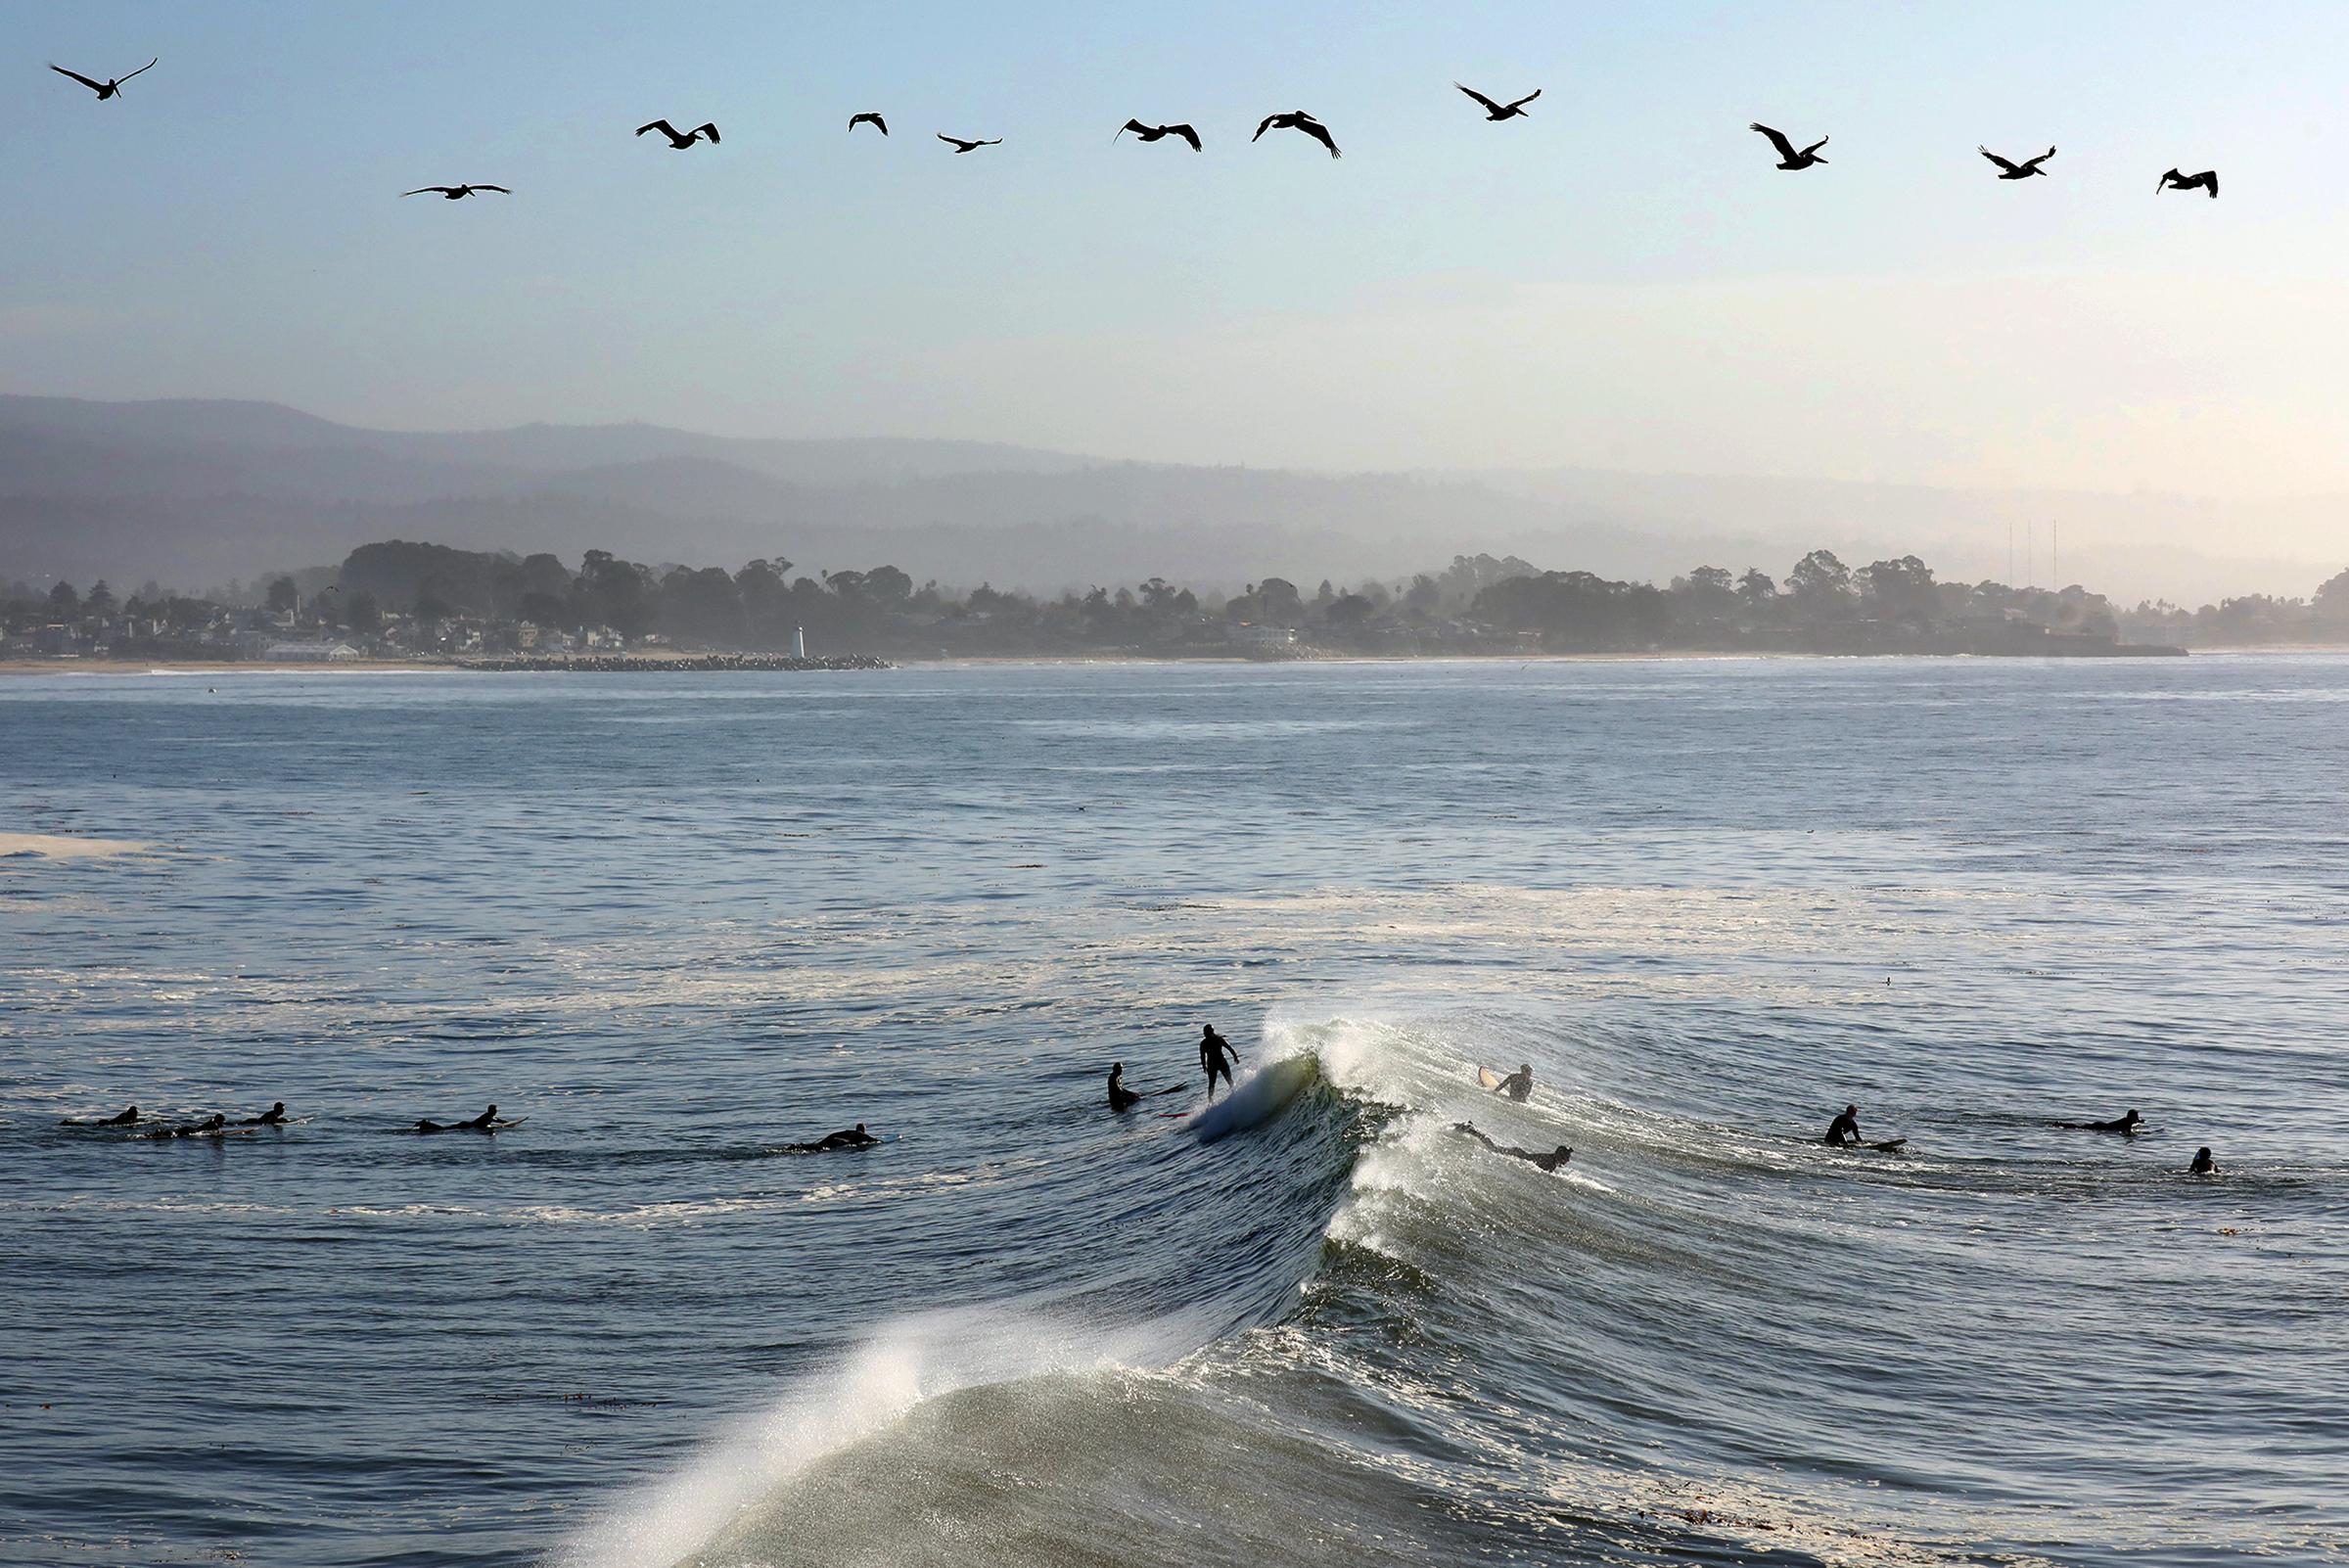 A squadron of pelicans wings northward as surfers paddle into the swell at Steamer Lane.